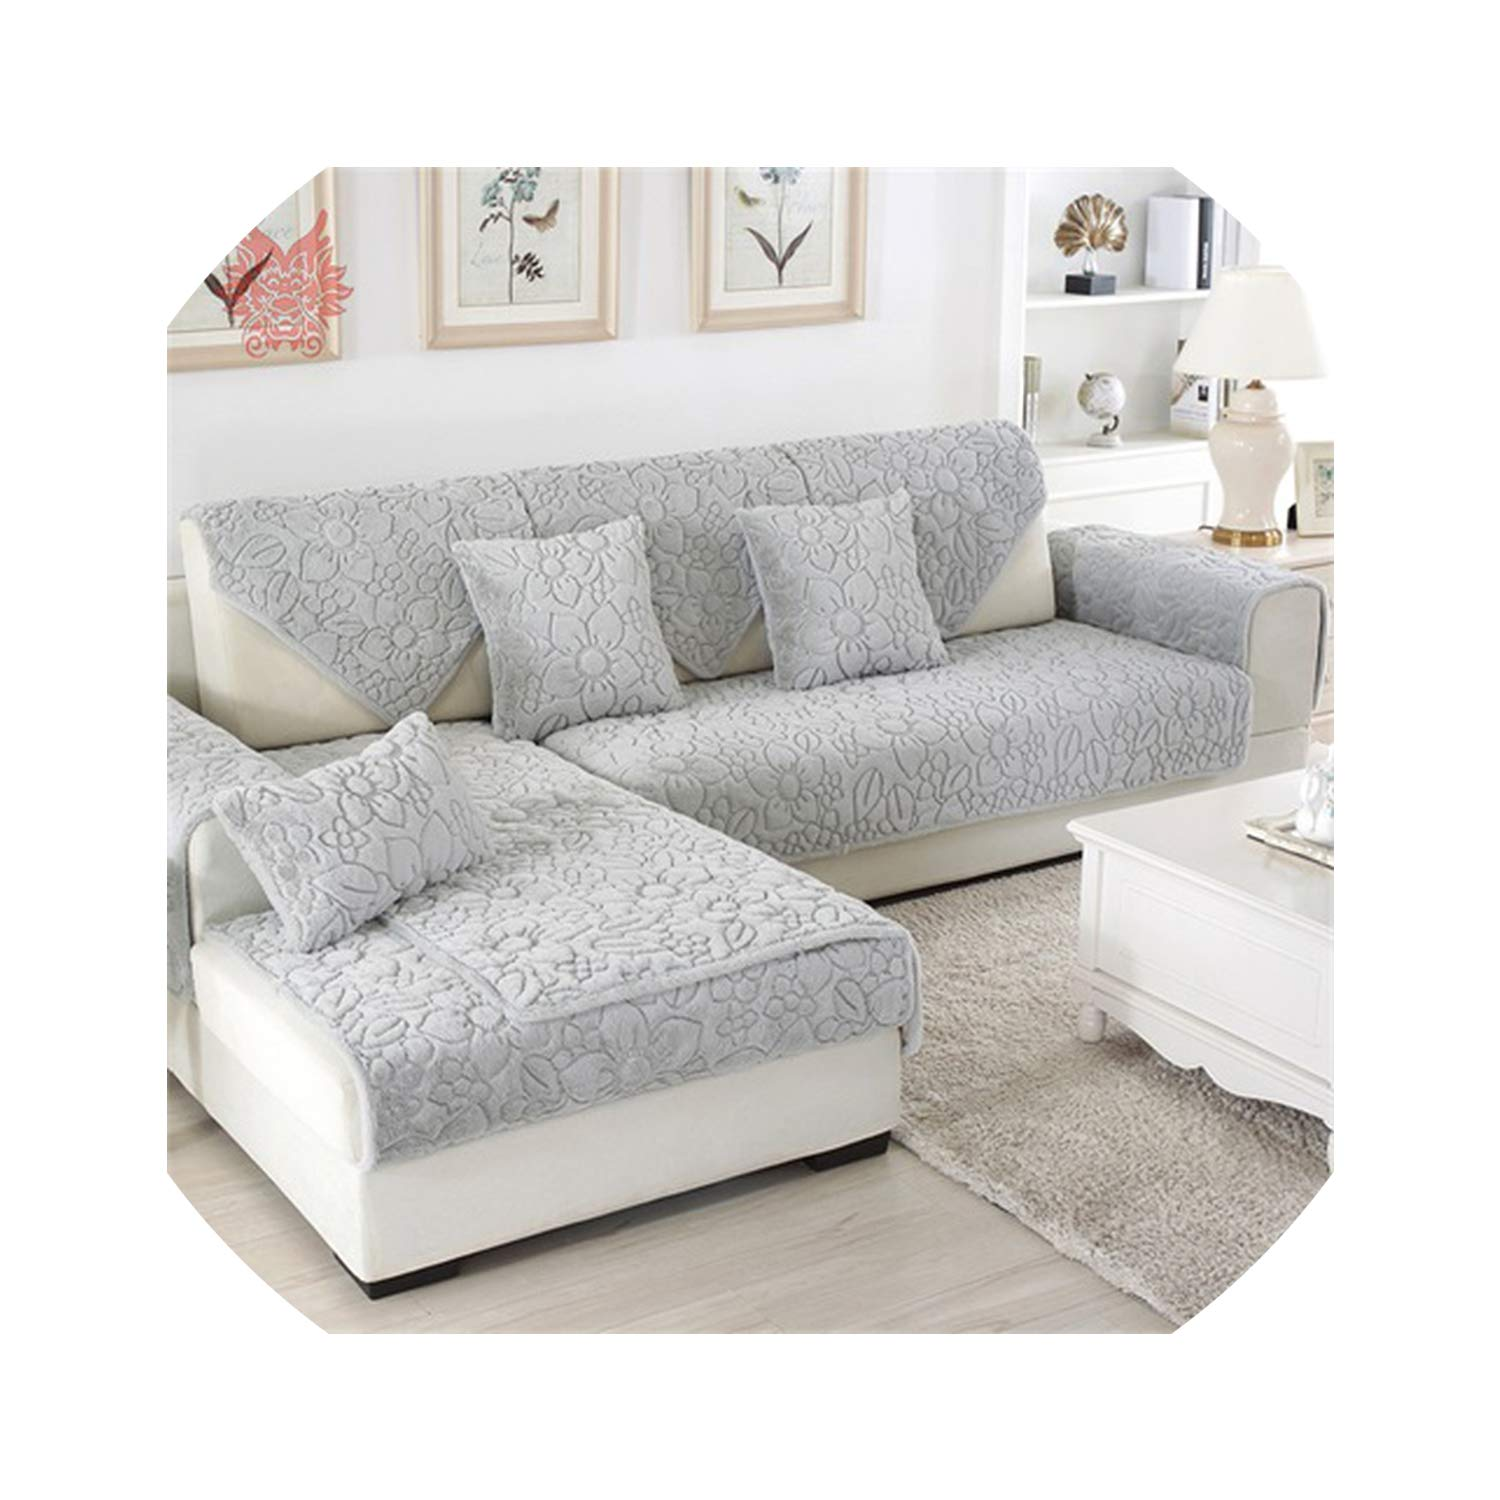 Amazon.com: White Grey Floral Quilted Sofa Cover Plush Long ...